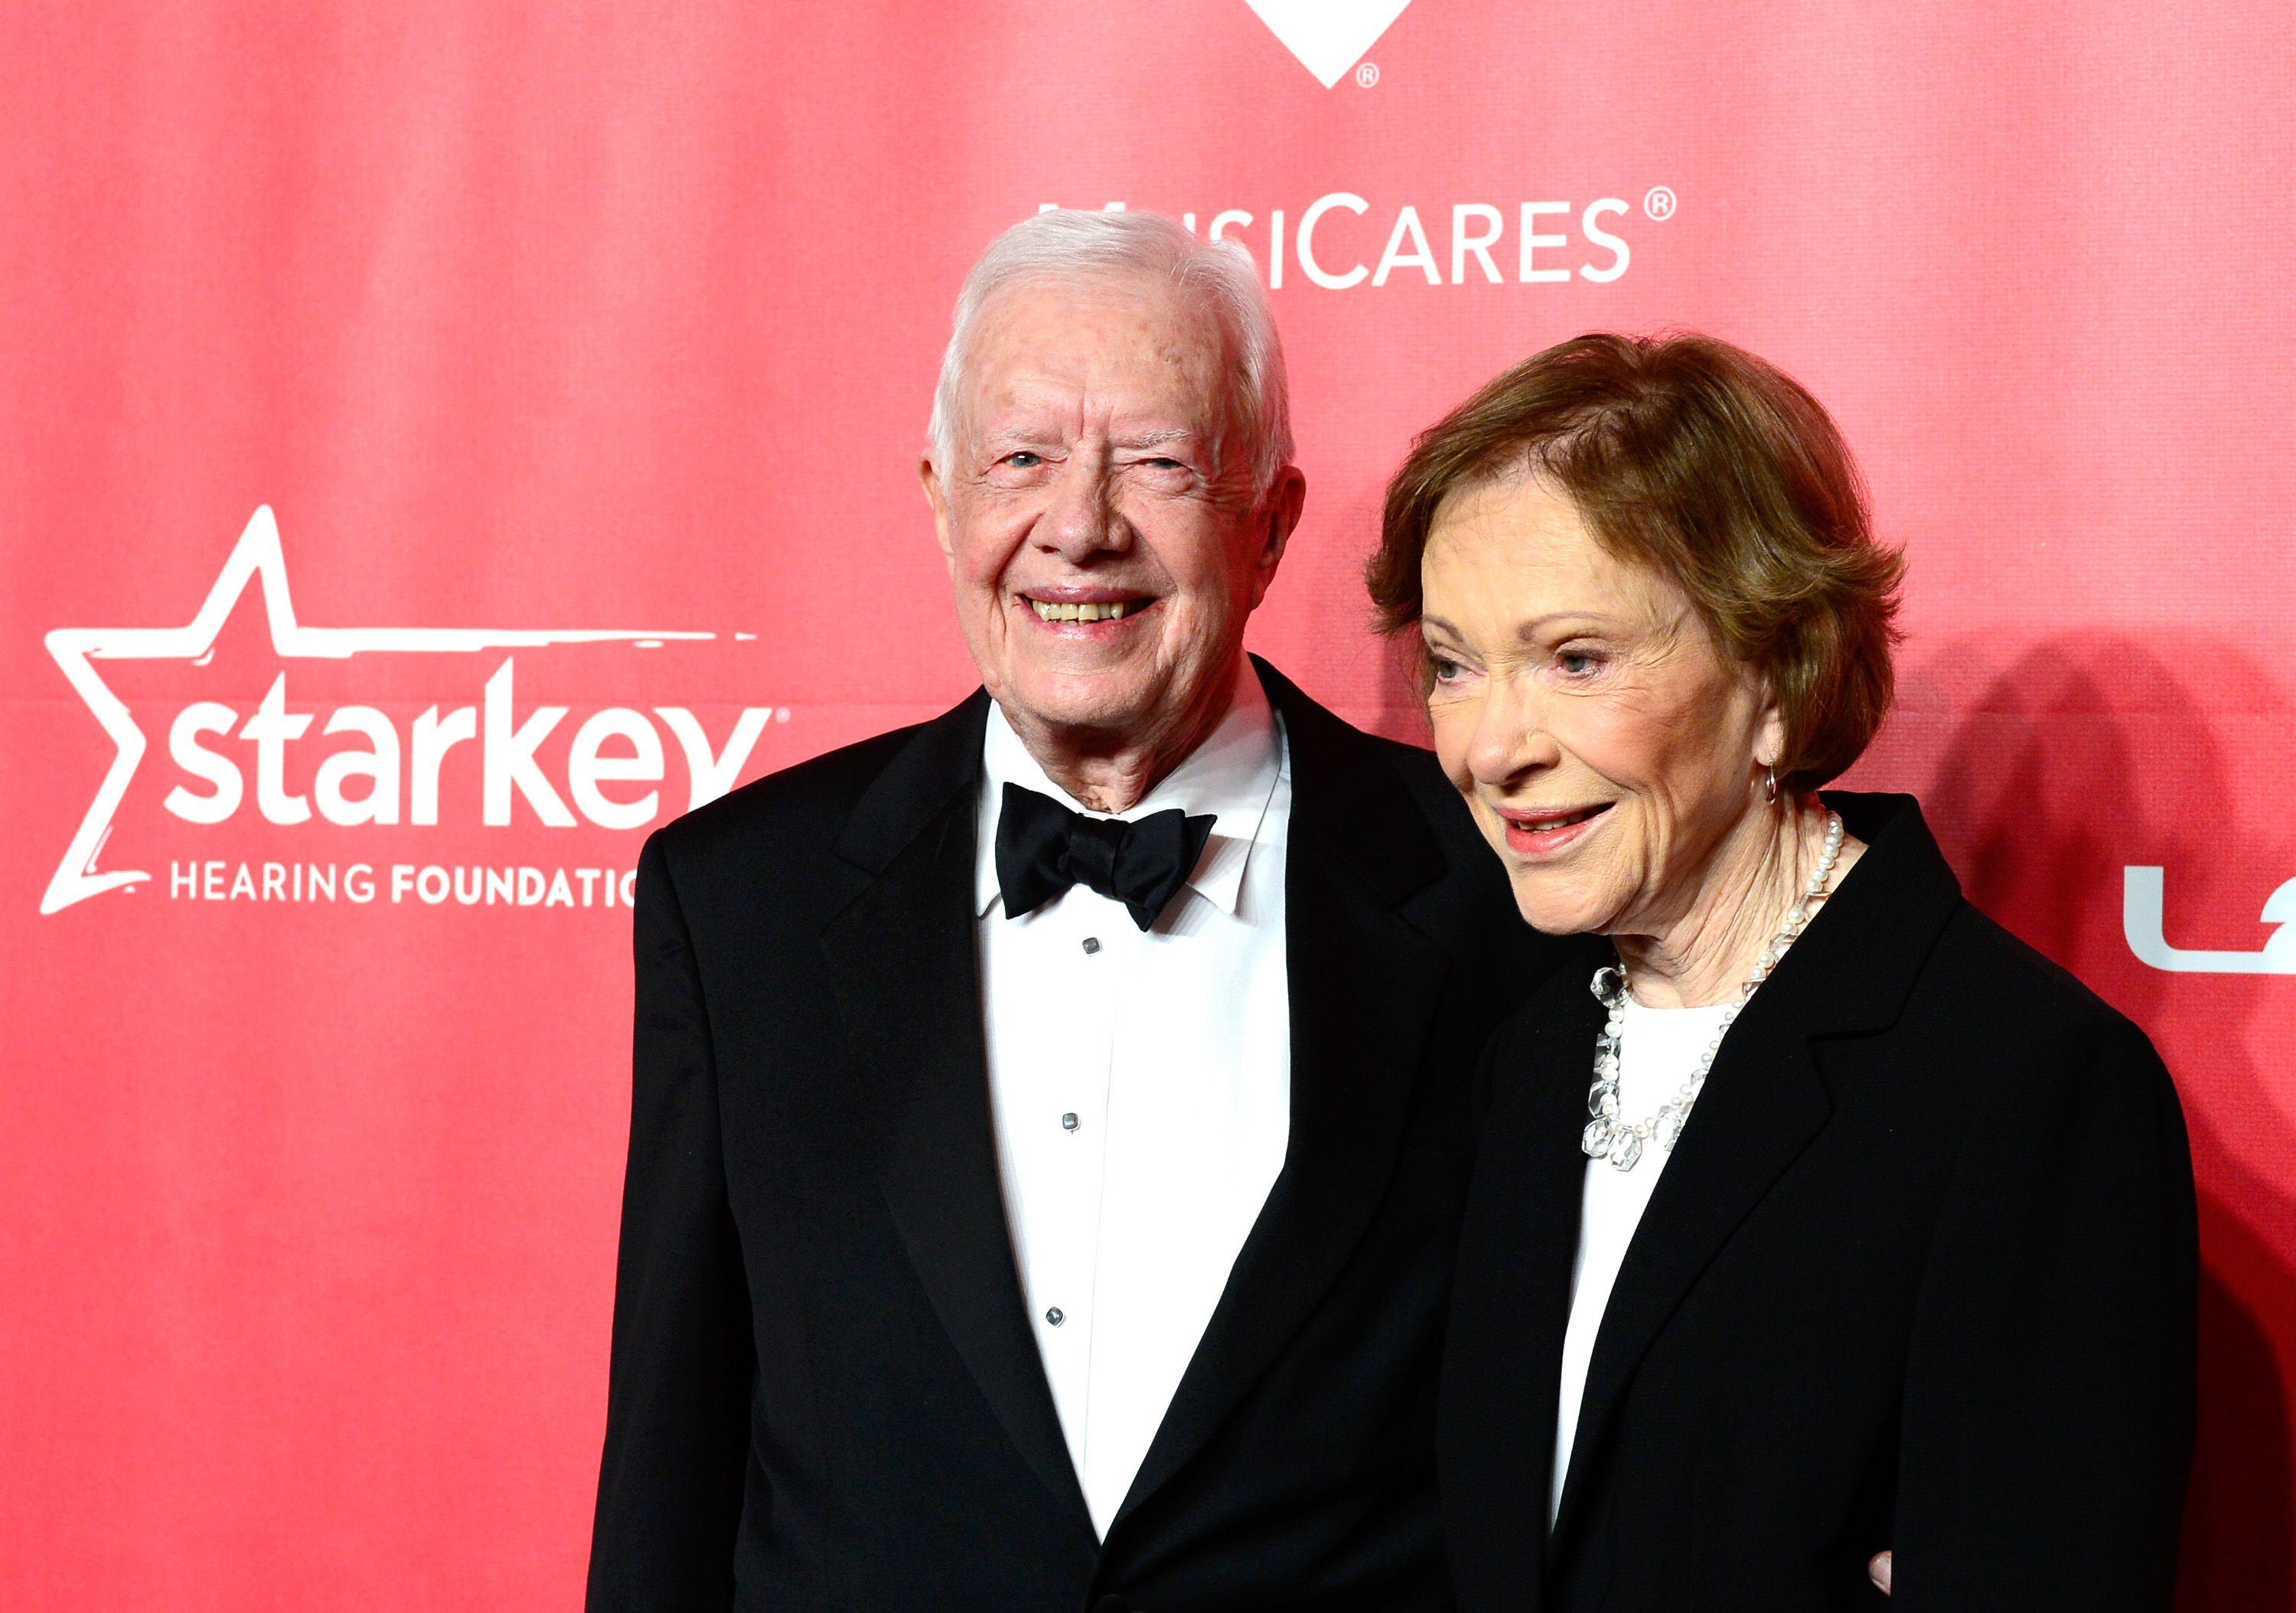 Former U.S. President Jimmy Carter and Rosalynn Carter at the 25th anniversary MusiCares Person Of The Year Gala at the Los Angeles Convention Center on February 6, 2015 | Photo: Getty Images